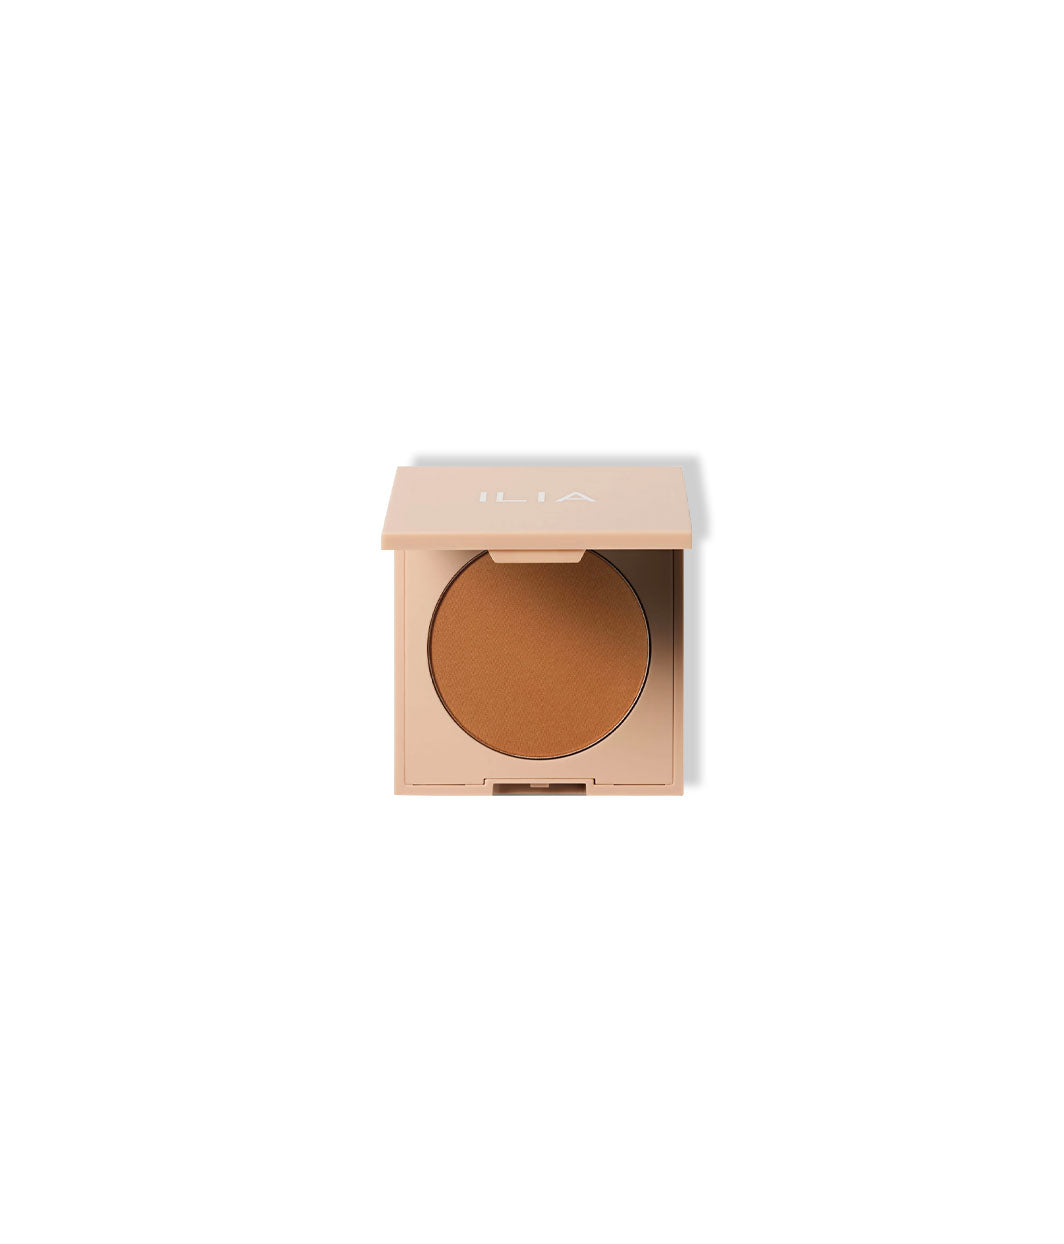 Nightlite Bronzing Powder - LEMON LAINE - Bronzers - Ilia